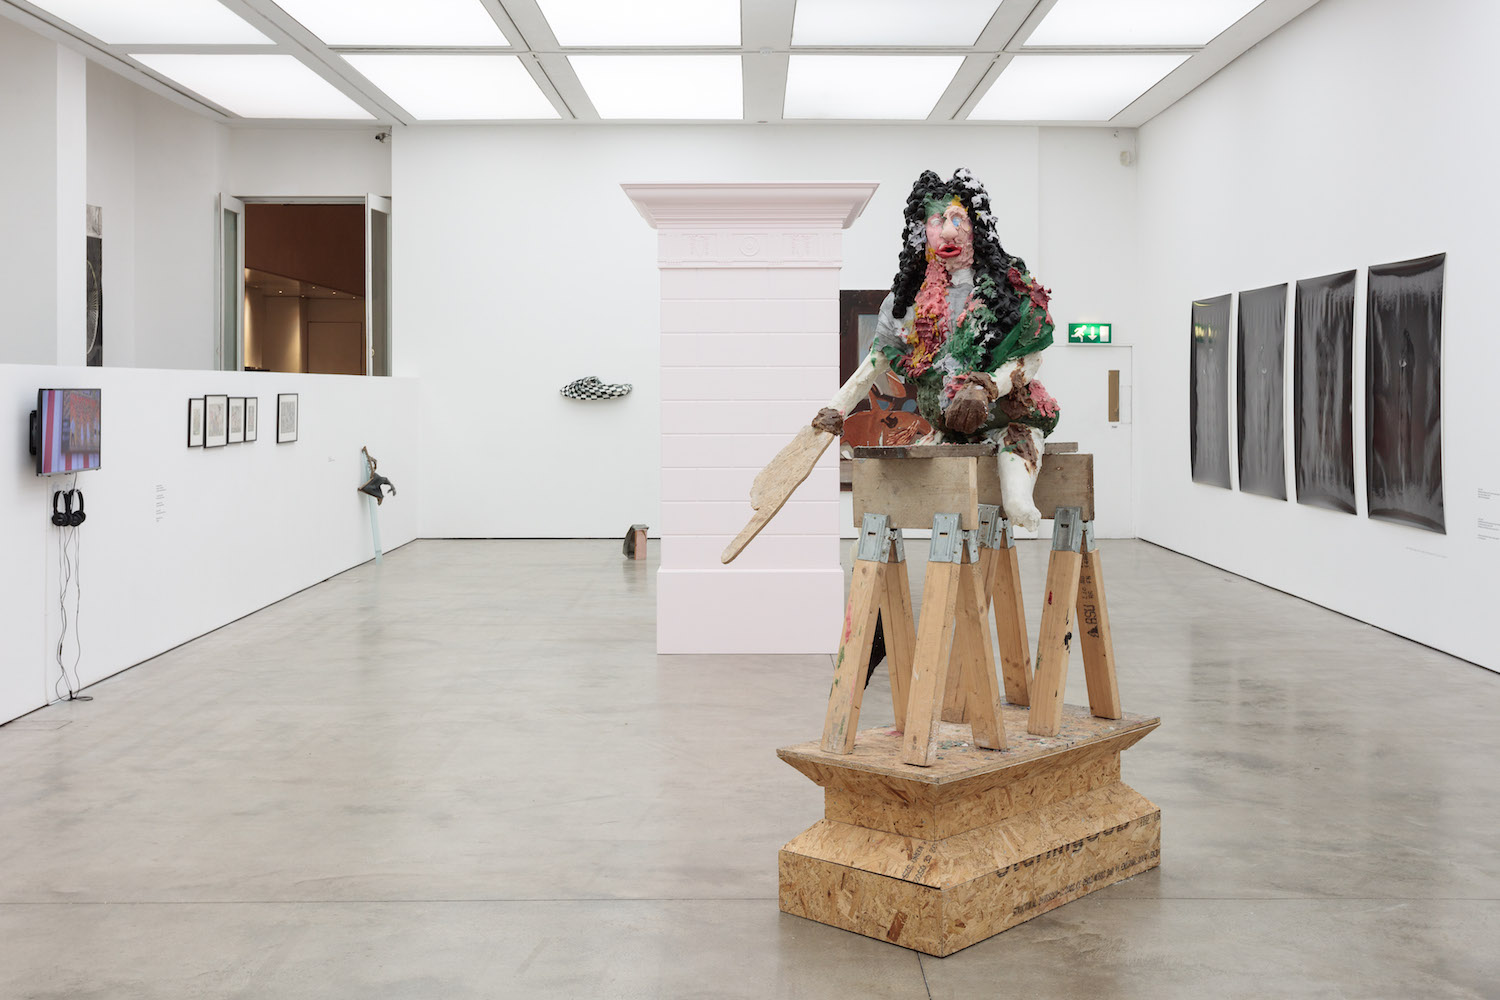 Jamie Fitzpatrick, Sing me a song to bring tears to the whites of my eyes, 2015. Installation view. Courtesy of UK/RAINE, Saatchi Gallery, London. Photographer: Steve White.